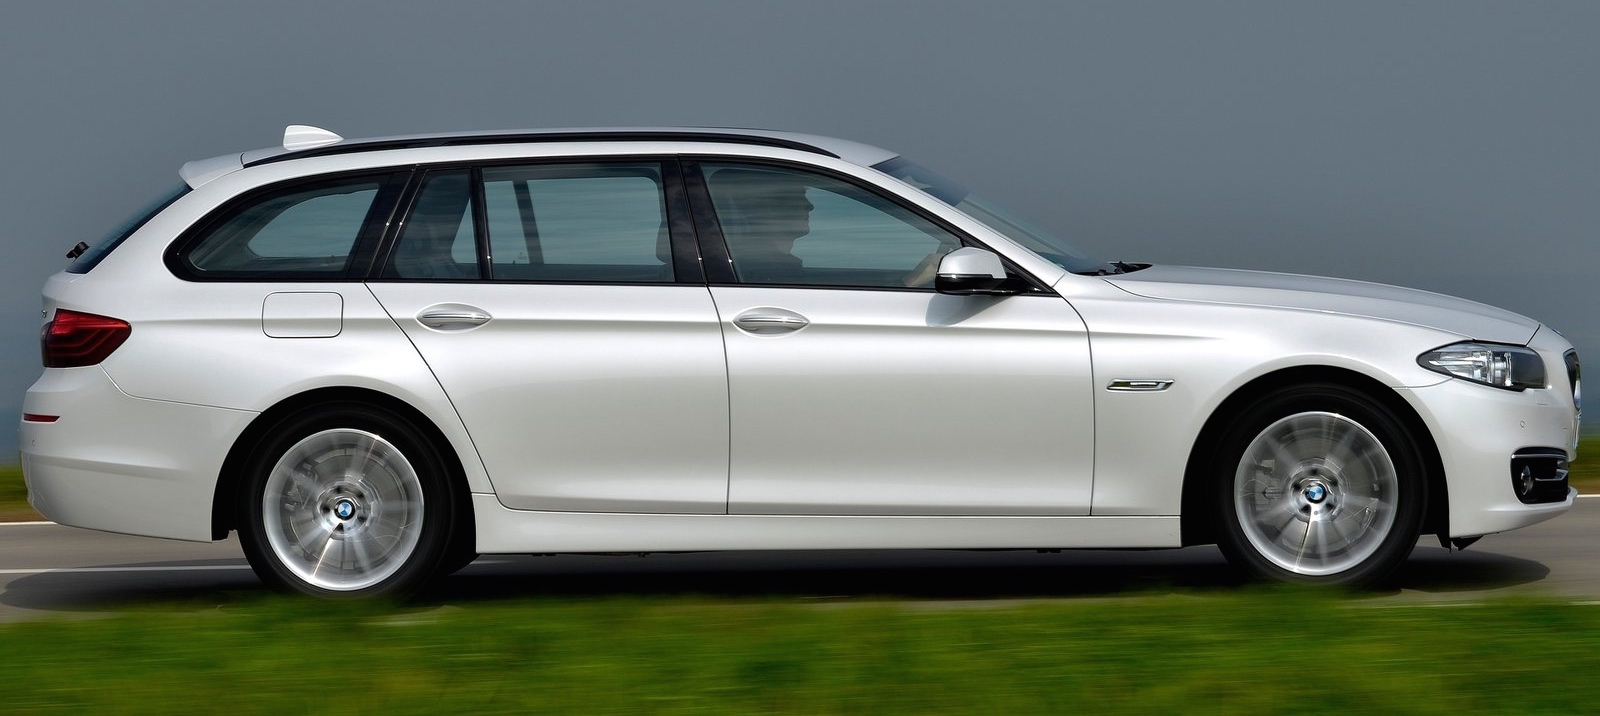 BMW-520d_Touring_2015_1600x1200_wallpaper_15